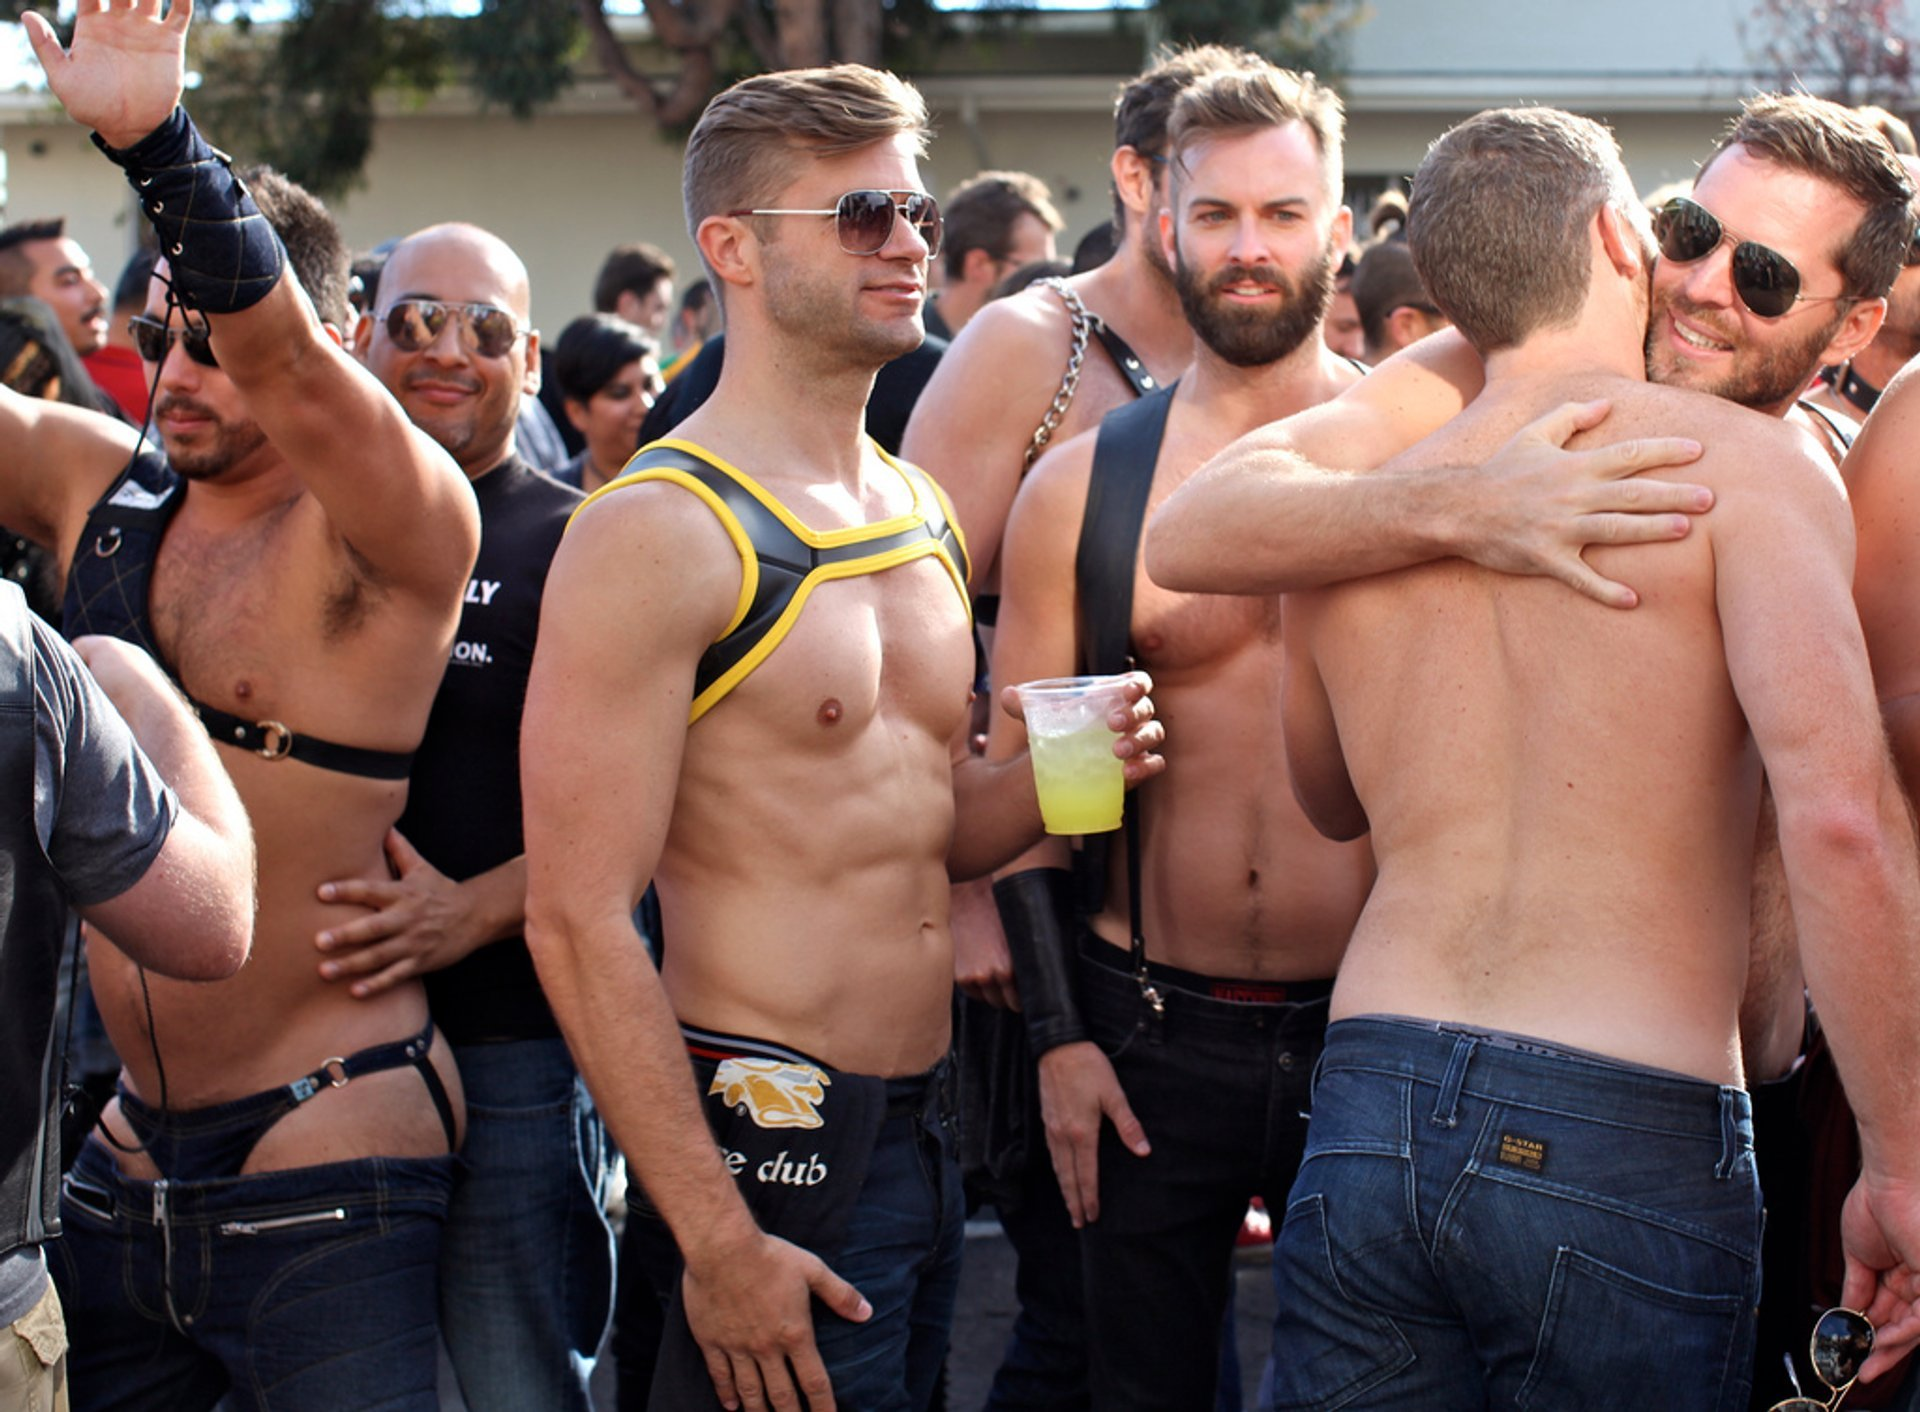 Folsom Street Fair in San Francisco 2020 - Best Time